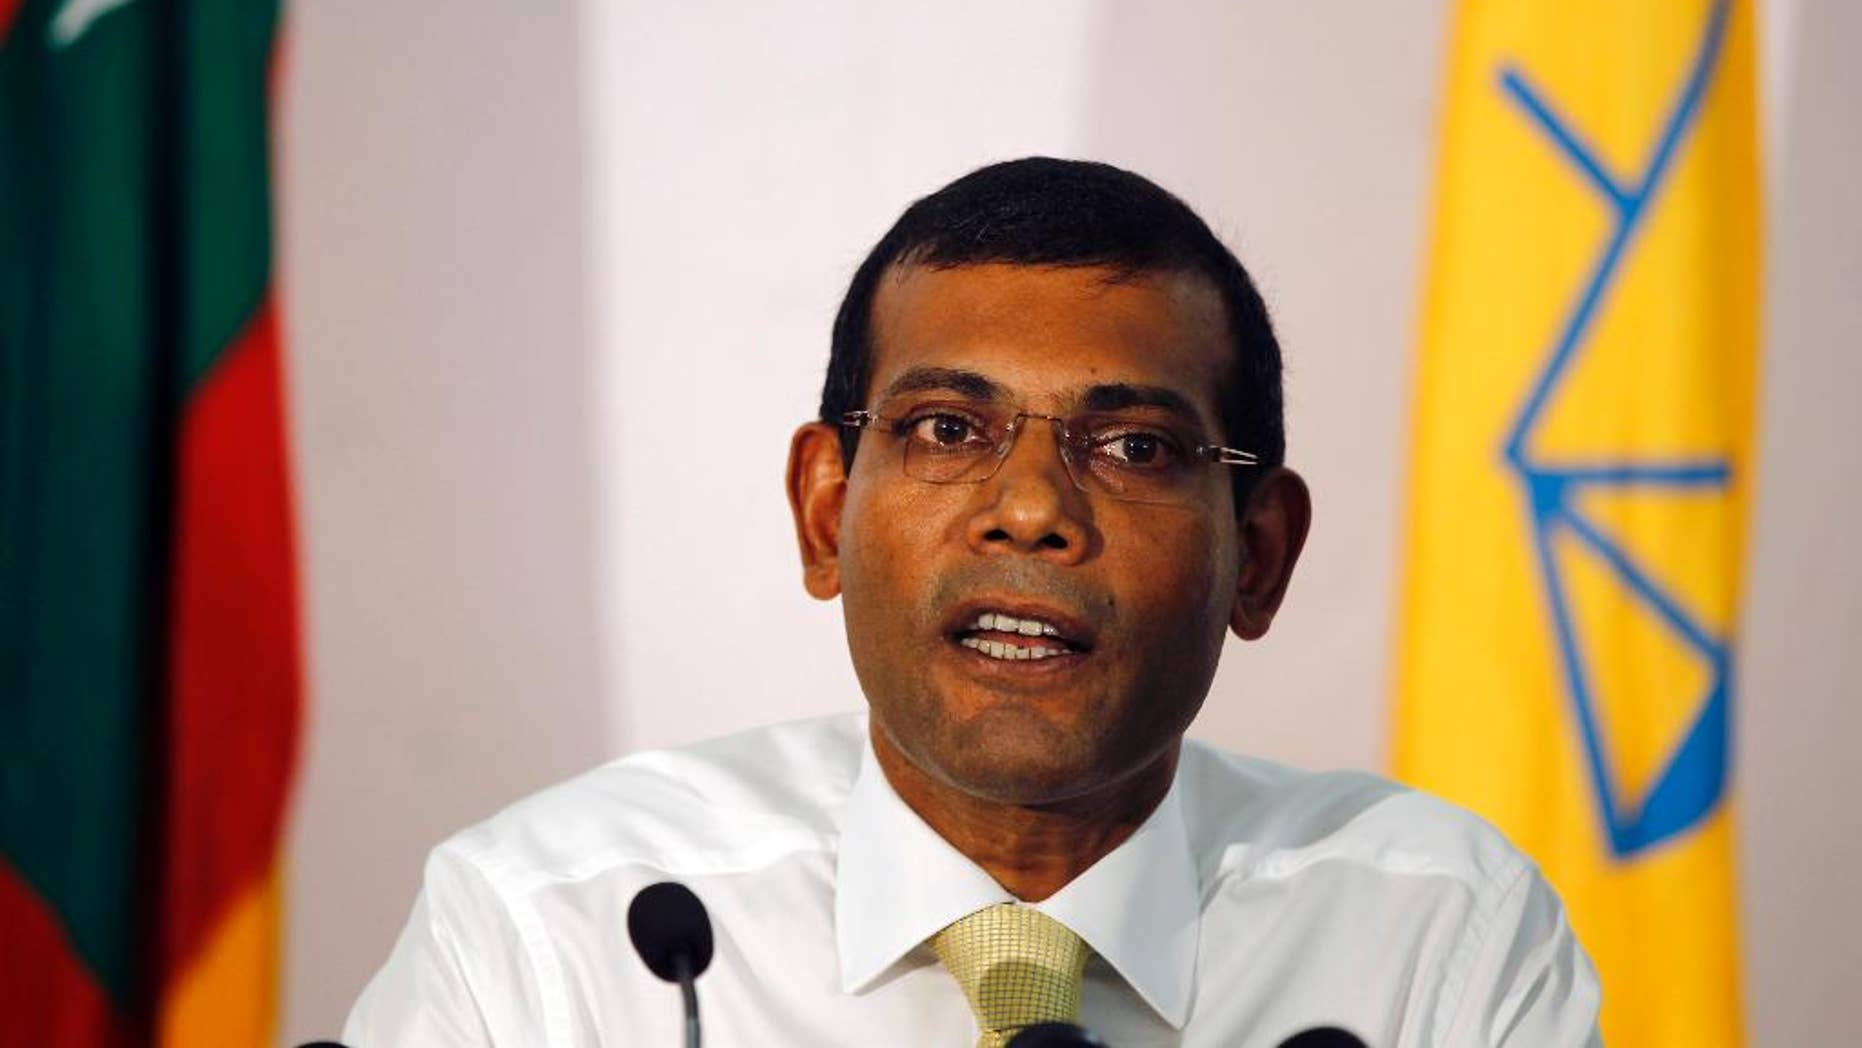 FILE- In this Nov. 10, 2013 file photo, former Maldives President and the then presidential candidate, Mohamed Nasheed, speaks to the media in Male, Maldives. Nasheed was convicted and sentenced to 13 years in prison on Friday, March 13, 2015,  after a quick and disputed trial for allegedly ordering a senior judge arrested while in office. (AP Photo/Sinan Hussain, File)